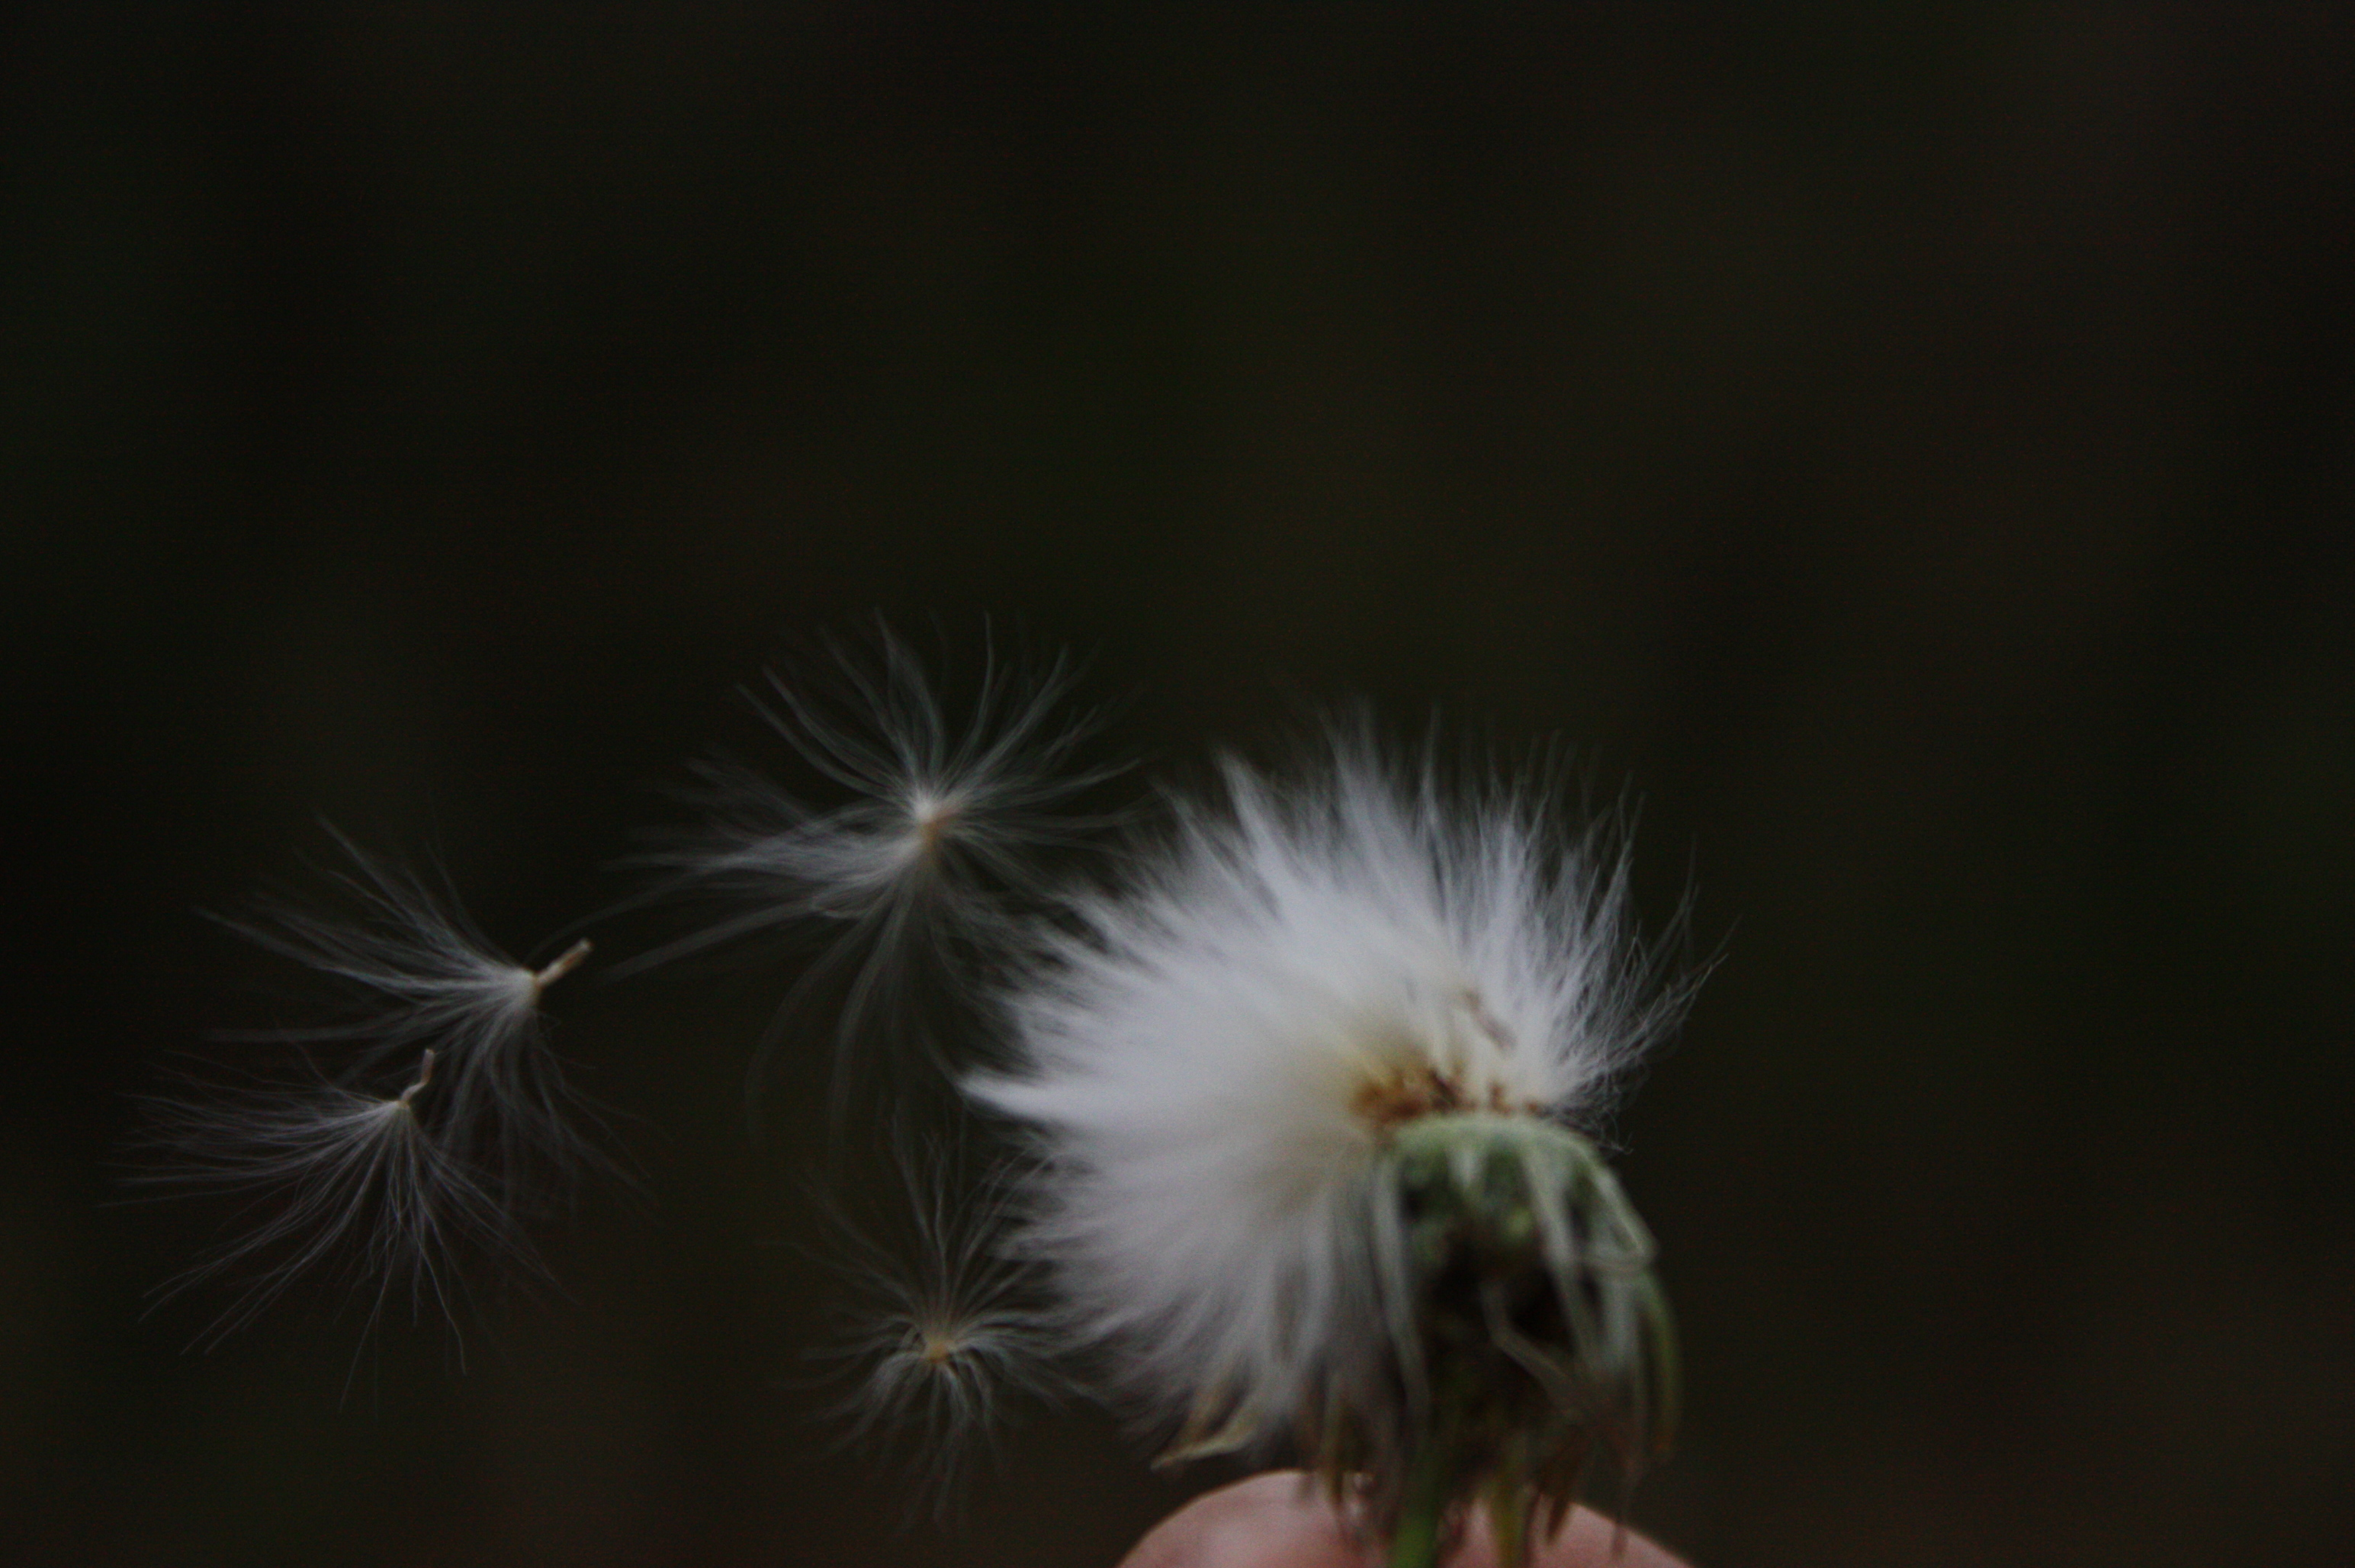 Hd Wallpapers Blowing Dandelion Wind 1280 X 720 221 Kb Jpeg | HD ...